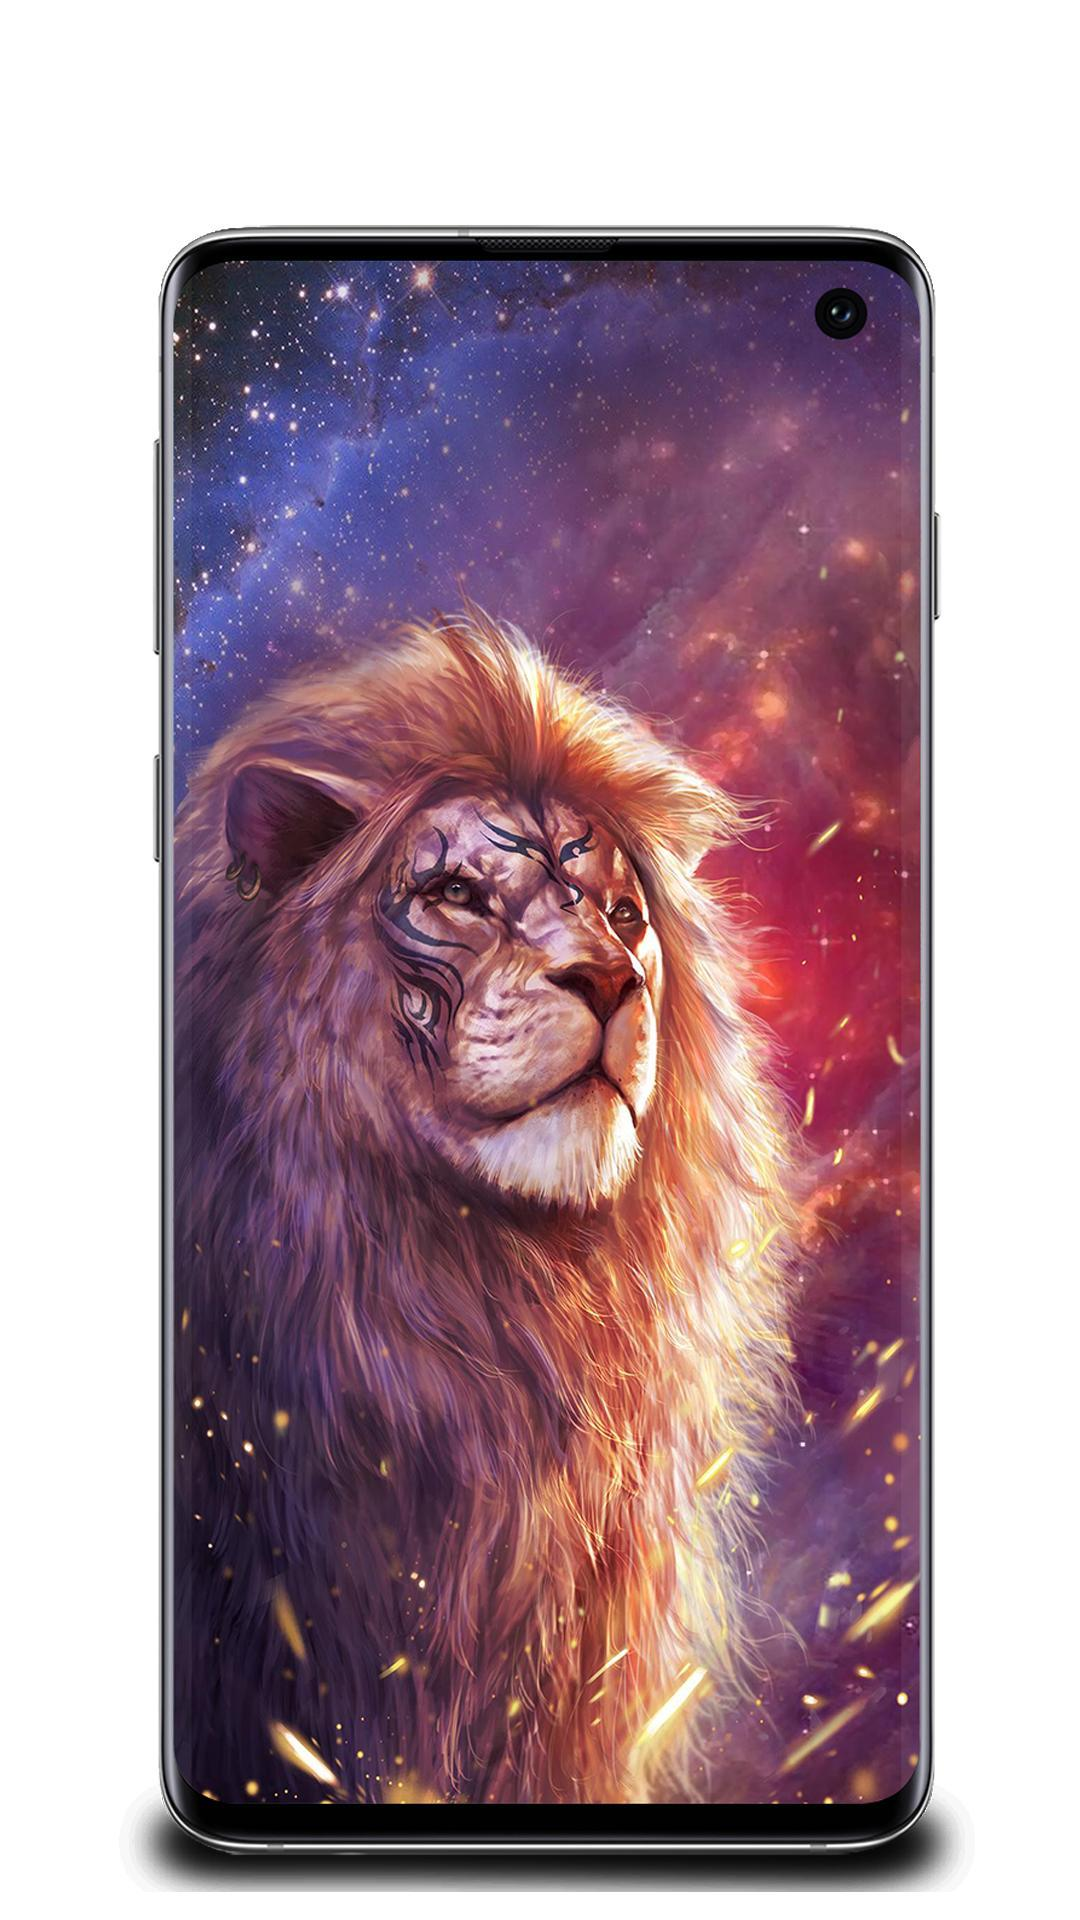 Lion Wallpapers For Android Apk Download Images, Photos, Reviews